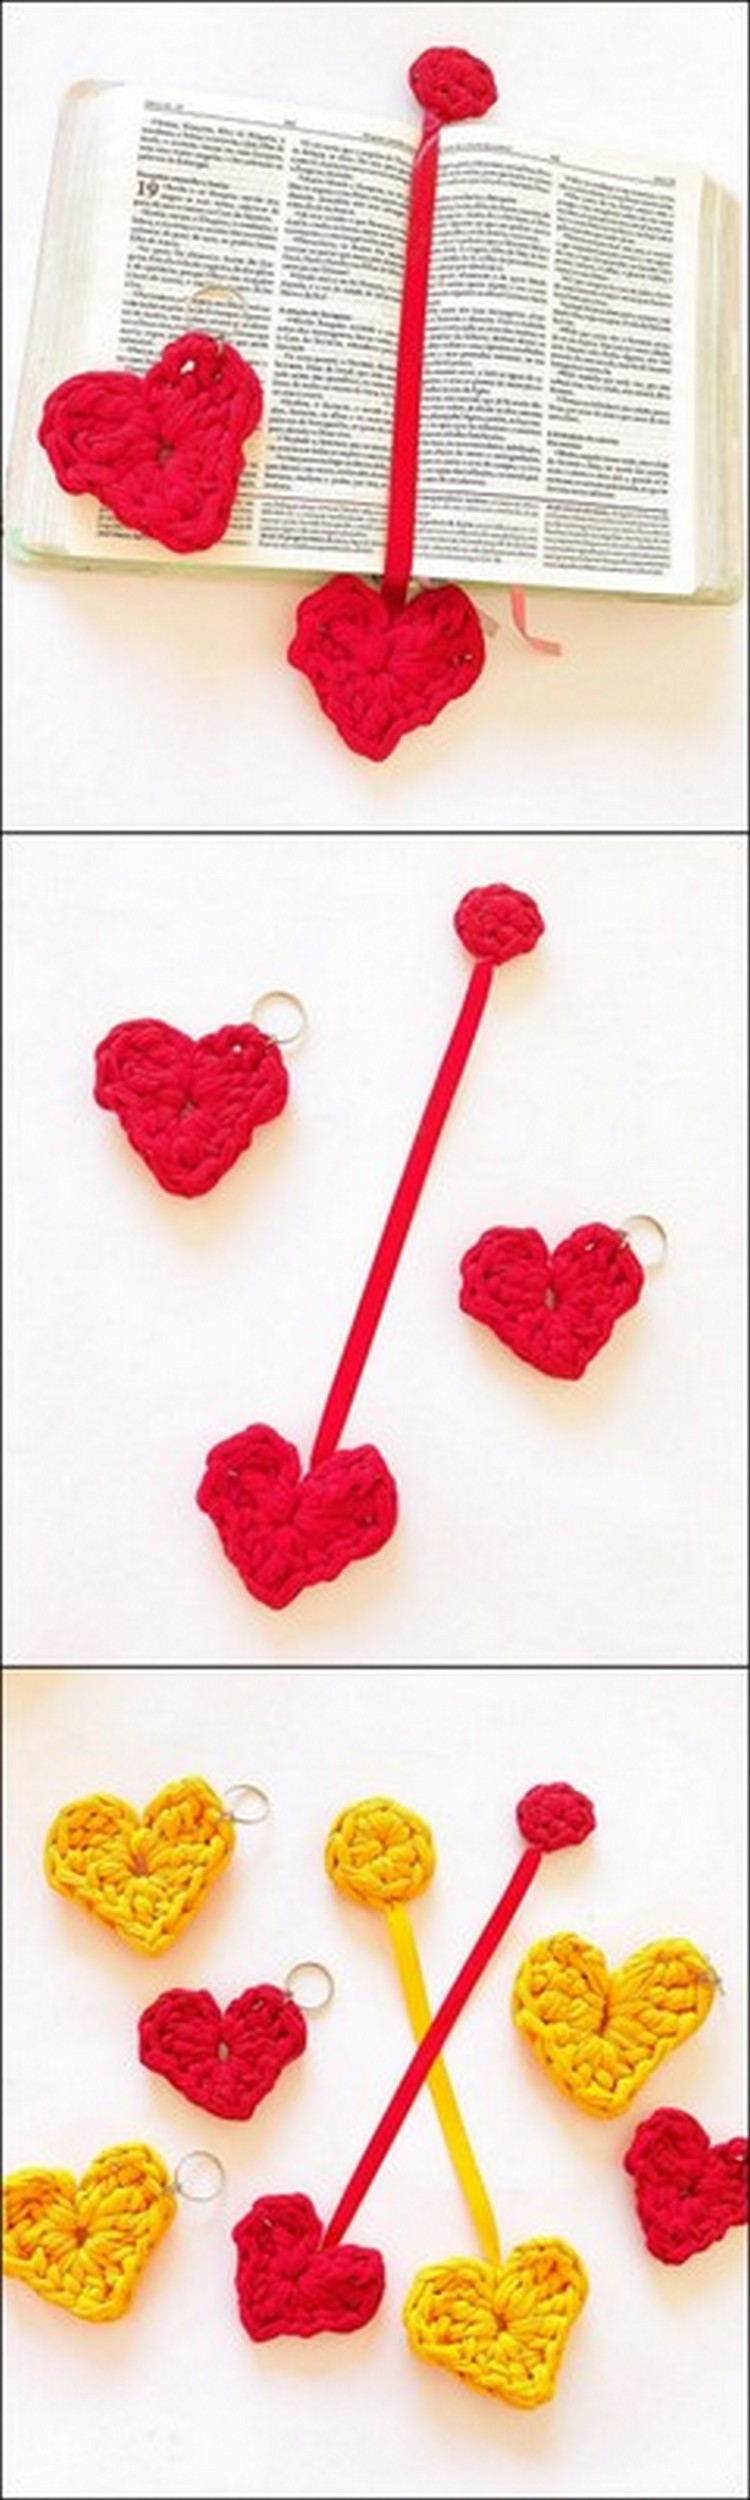 Bookmark and Keychain Free Crochet Pattern